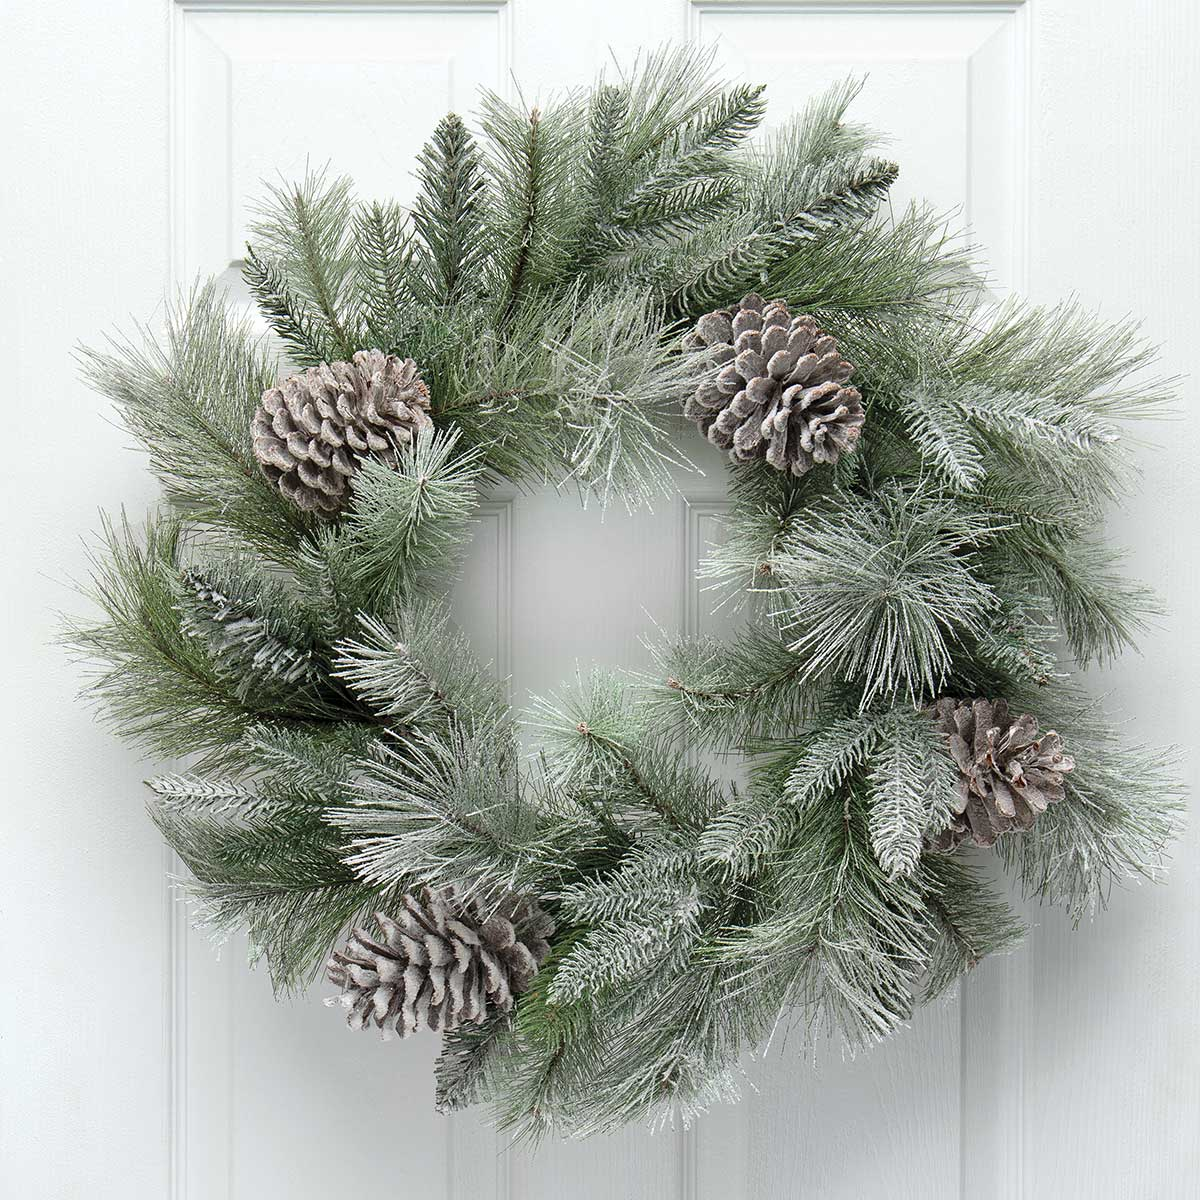 MAJESTIC FROSTED PINE WREATH GREEN WITH PINECONES AND